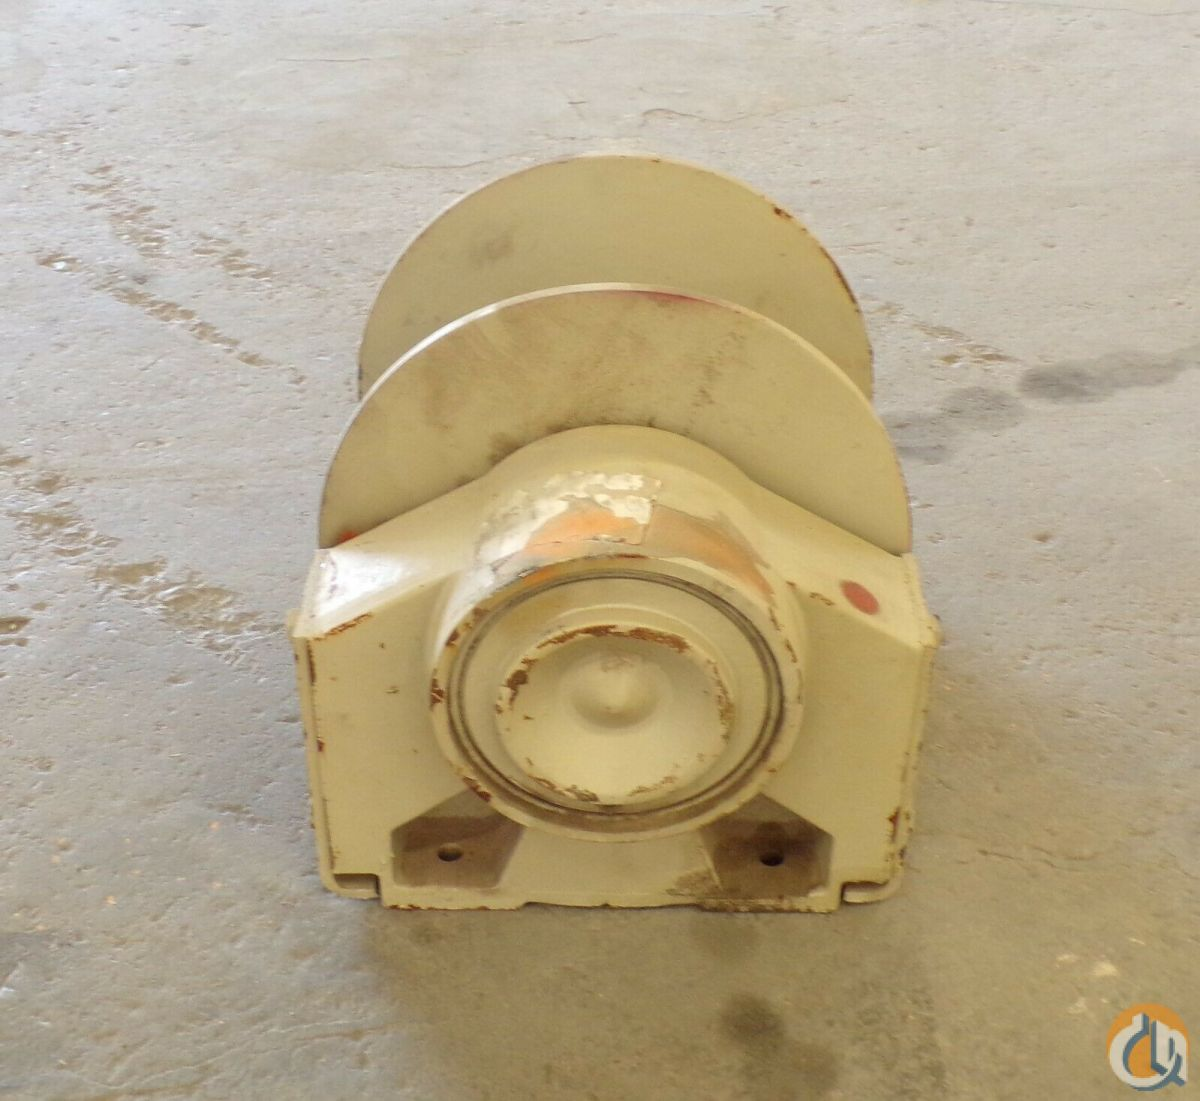 Gearmatic GEARMATICBRADEN HYDRAULIC PLANETARY WINCH GH15-60029-.0 15000 LBS CAPACITY Winches  Drums Crane Part for Sale in Coffeyville Kansas on CraneNetwork.com